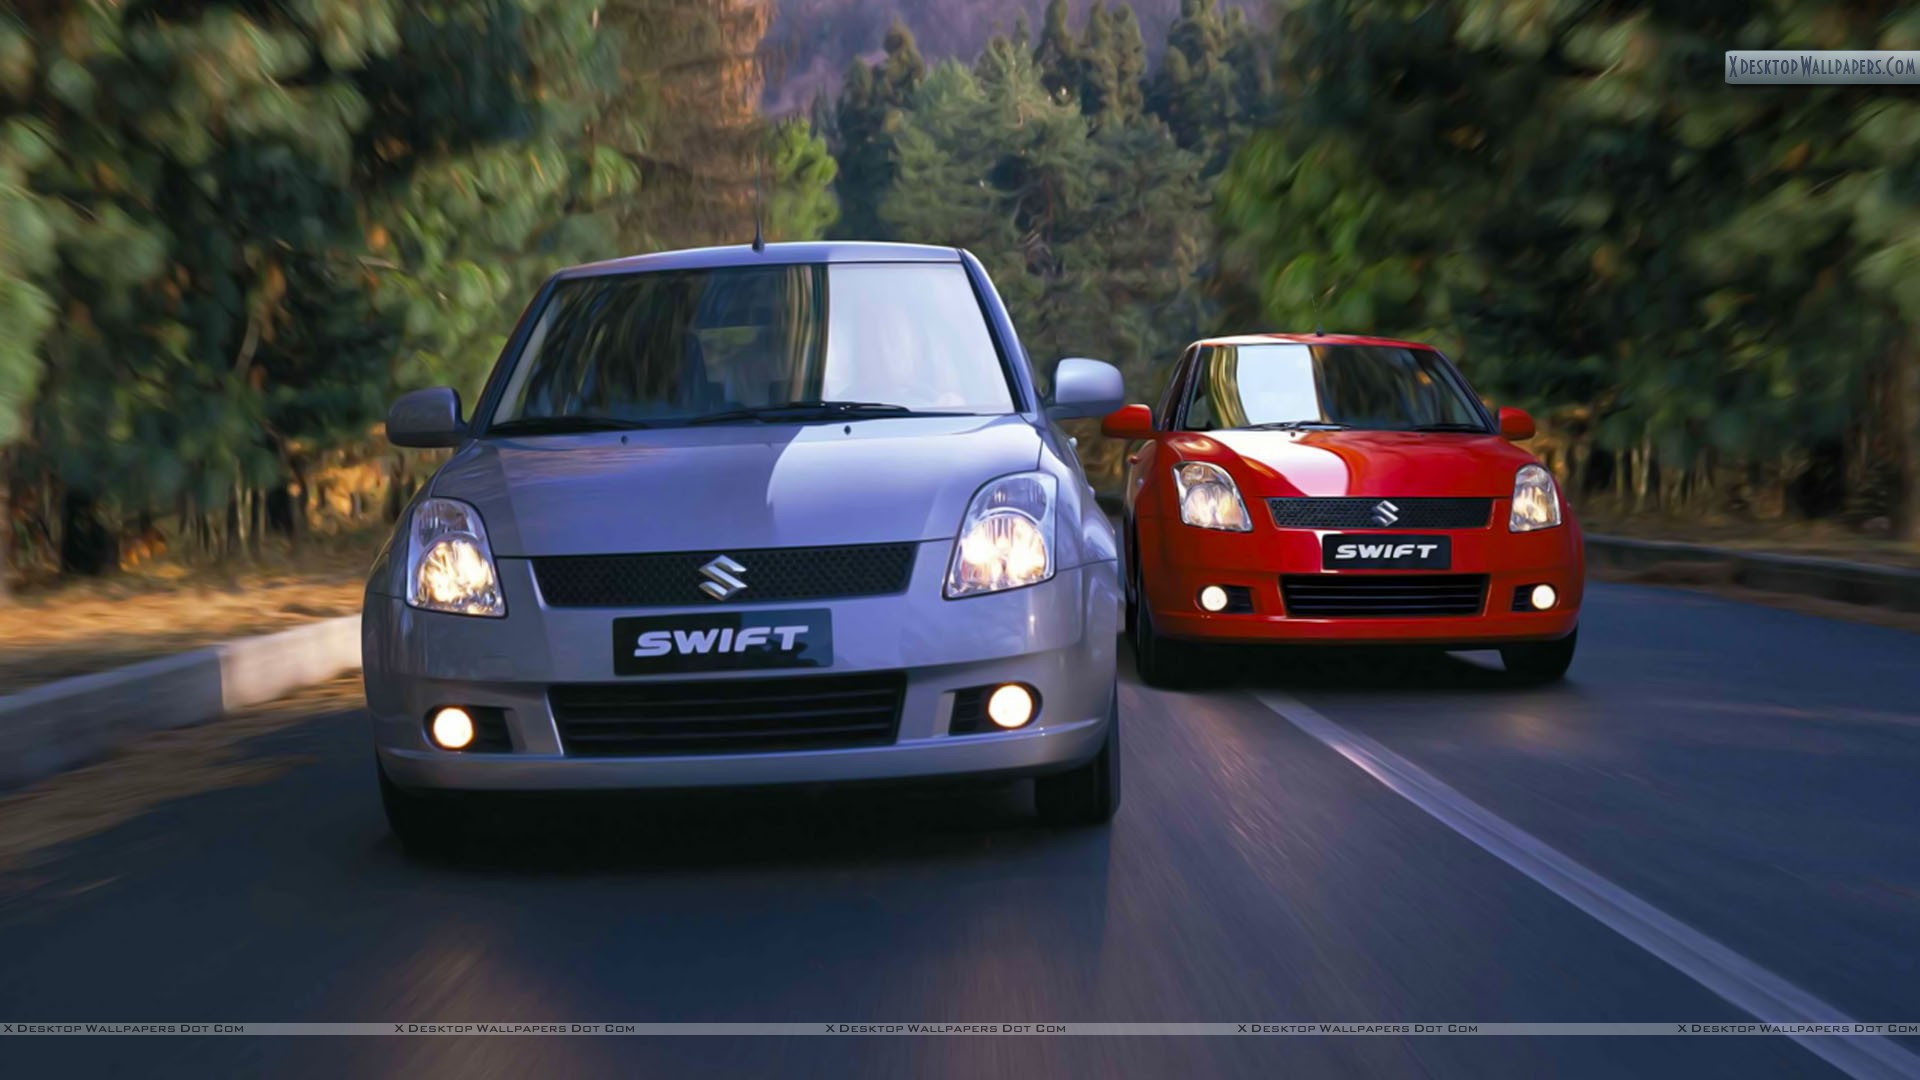 Auto___Suzuki_Suzuki_Swift_car_on_the_road__061215_